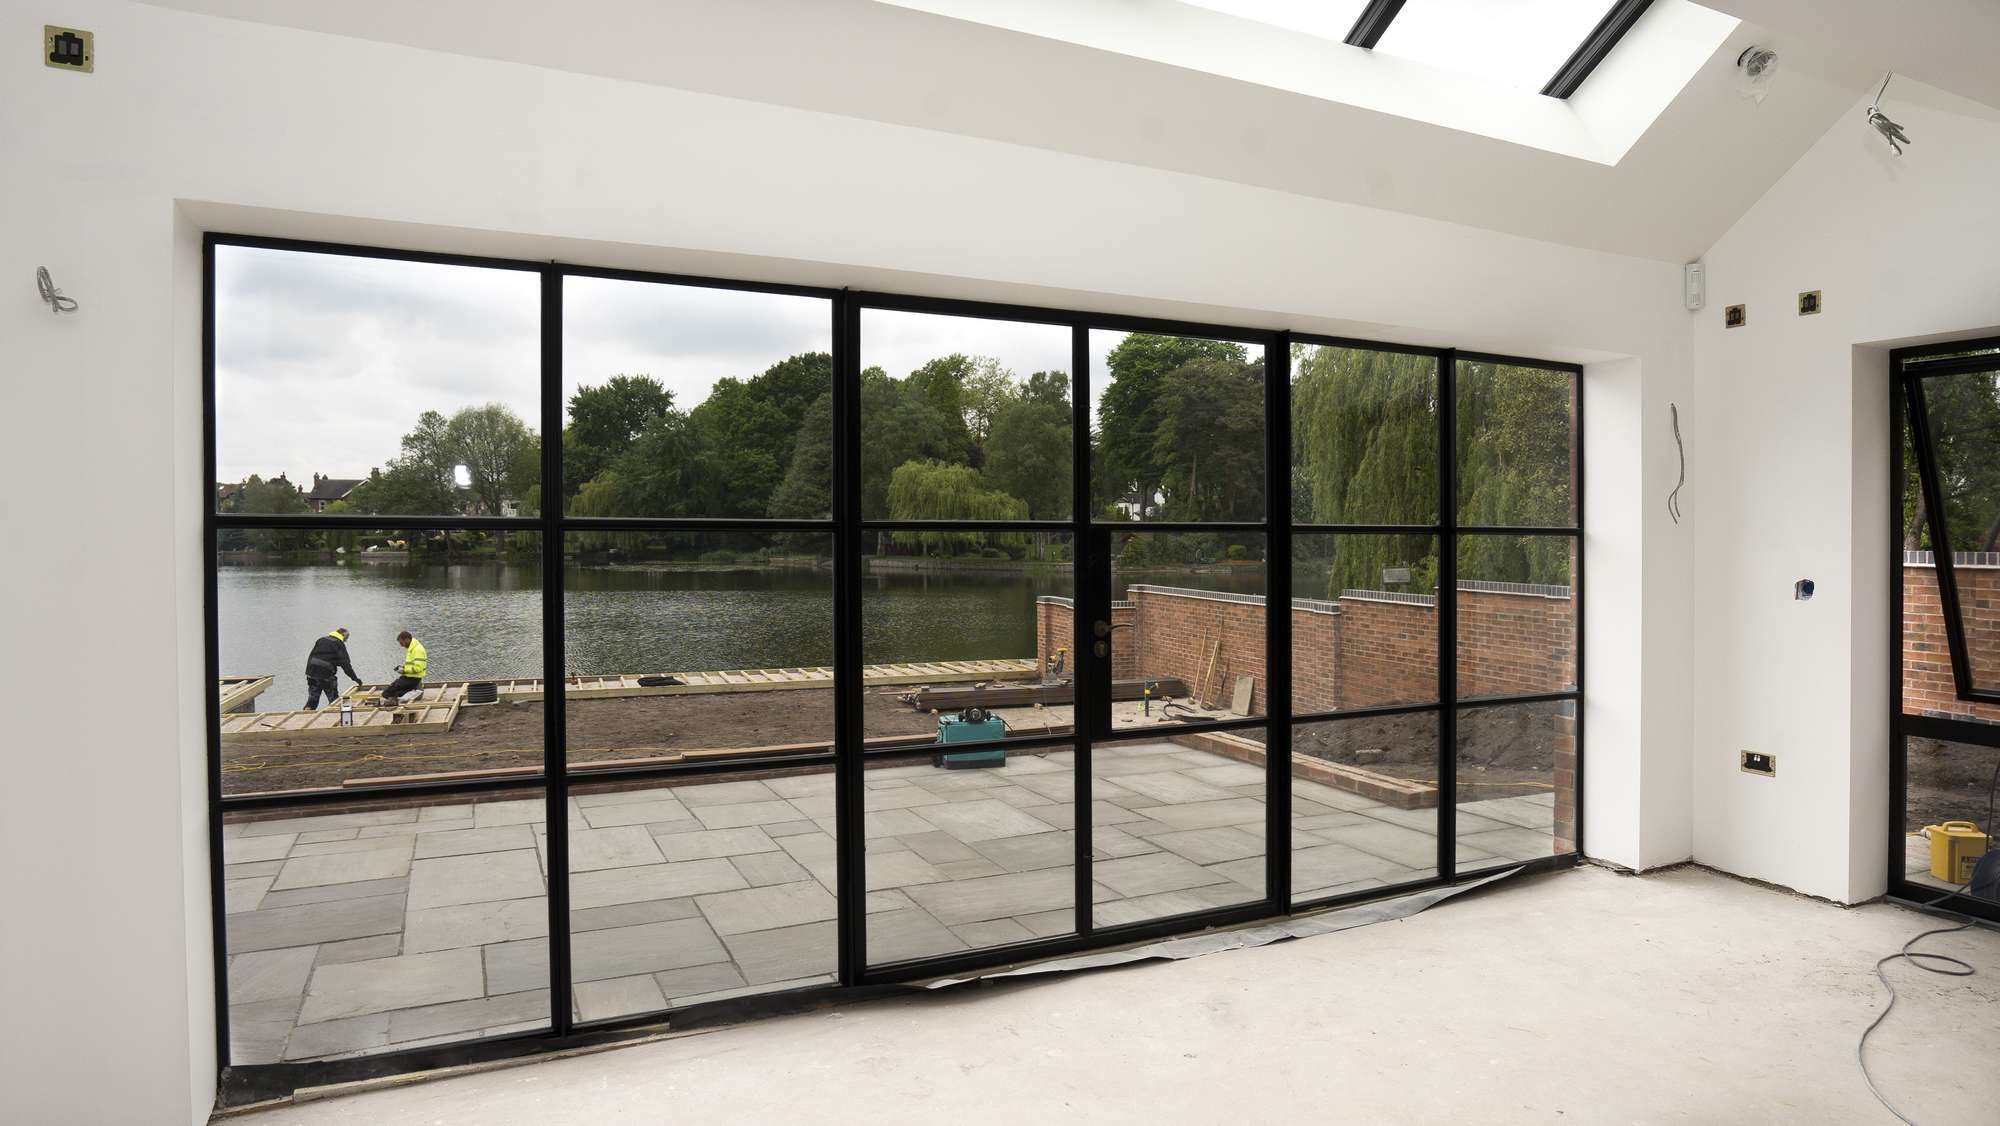 Internal View Of Large Crittall Screen In Black With